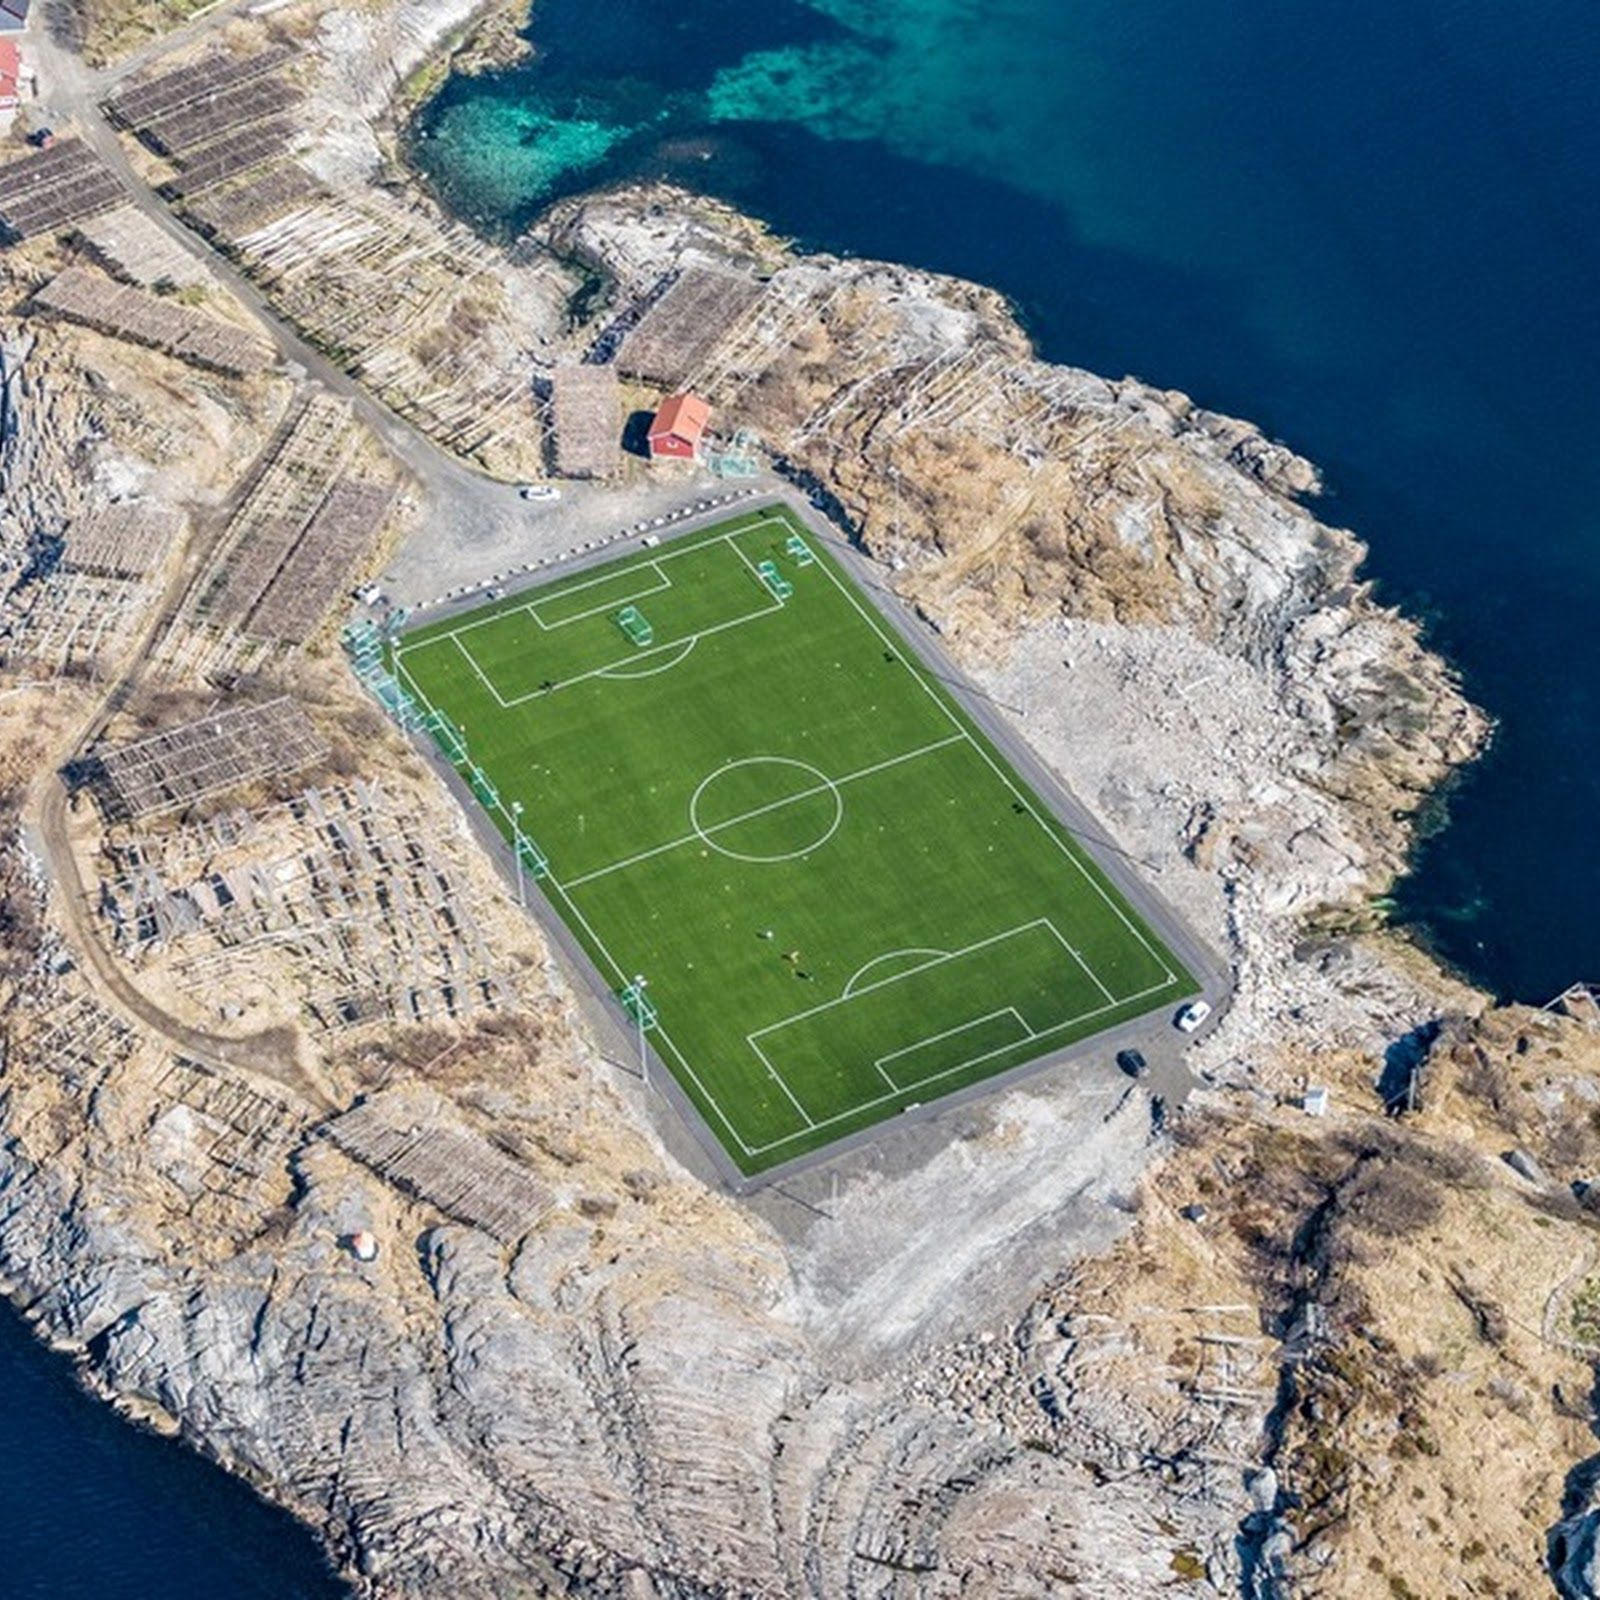 This Football Stadium in Henningsvær Football stadiums